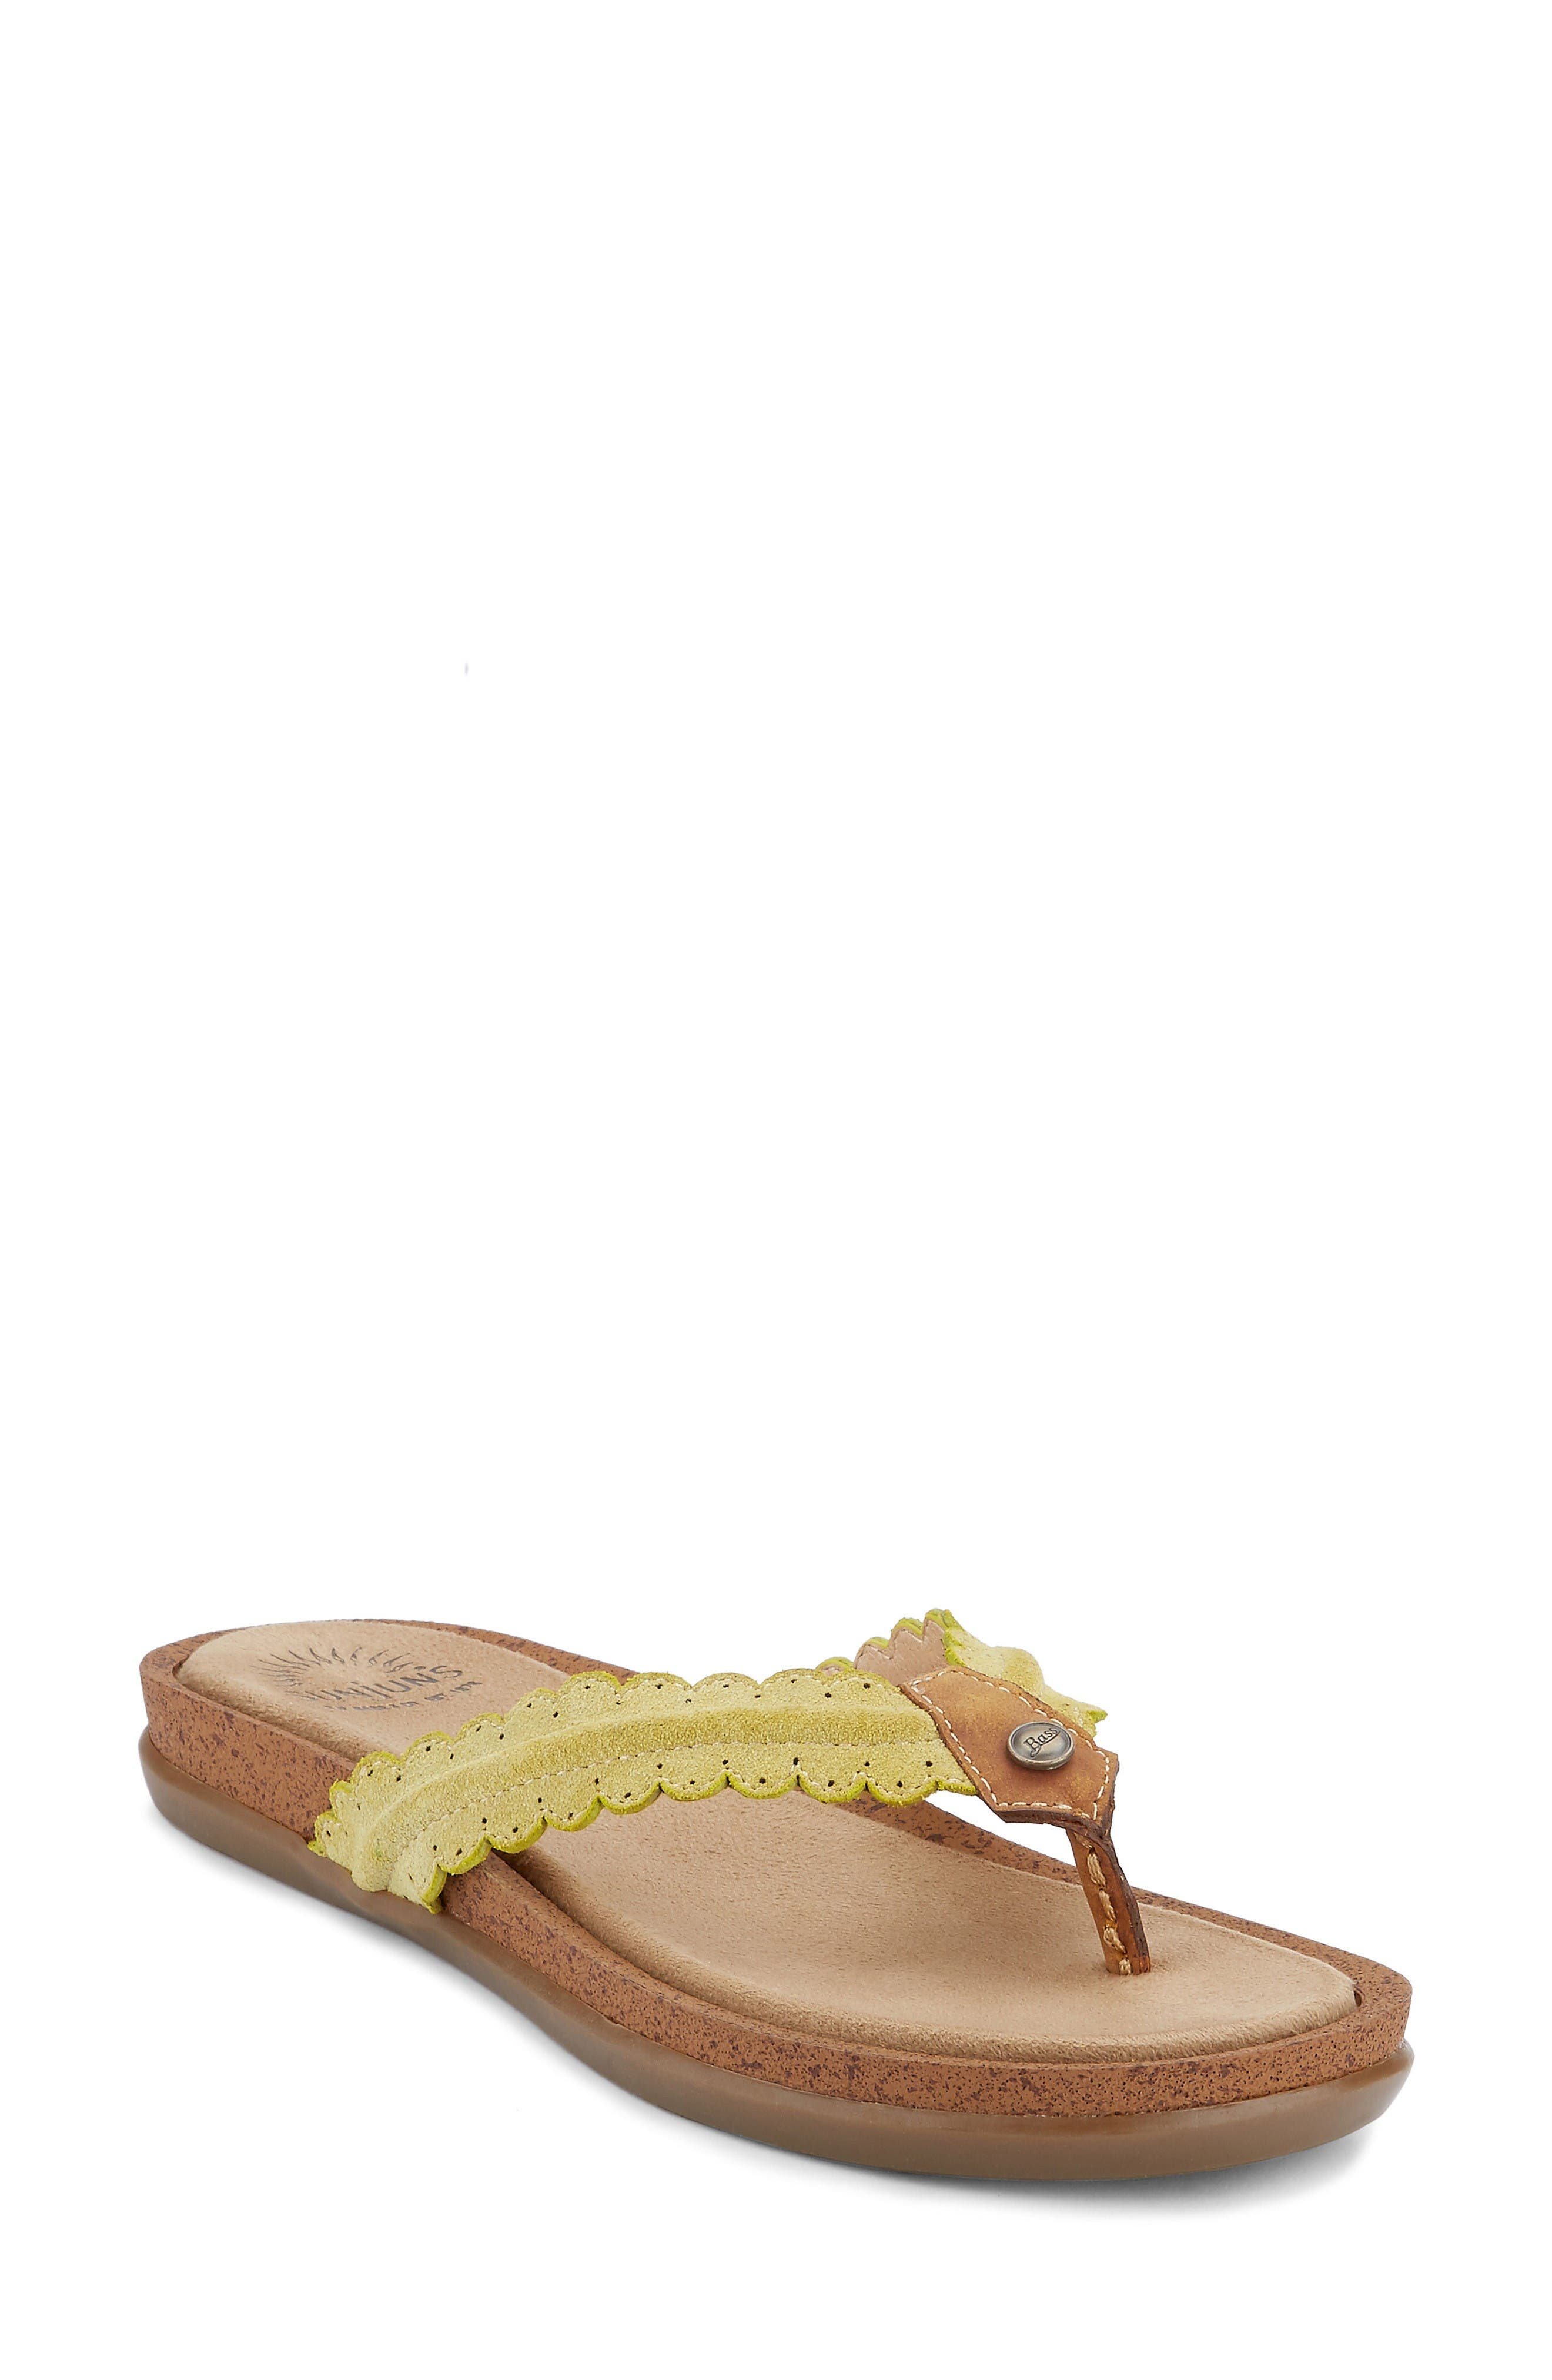 Alternate Image 1 Selected - G.H. Bass and Co. Samantha Thong Sandal (Women)